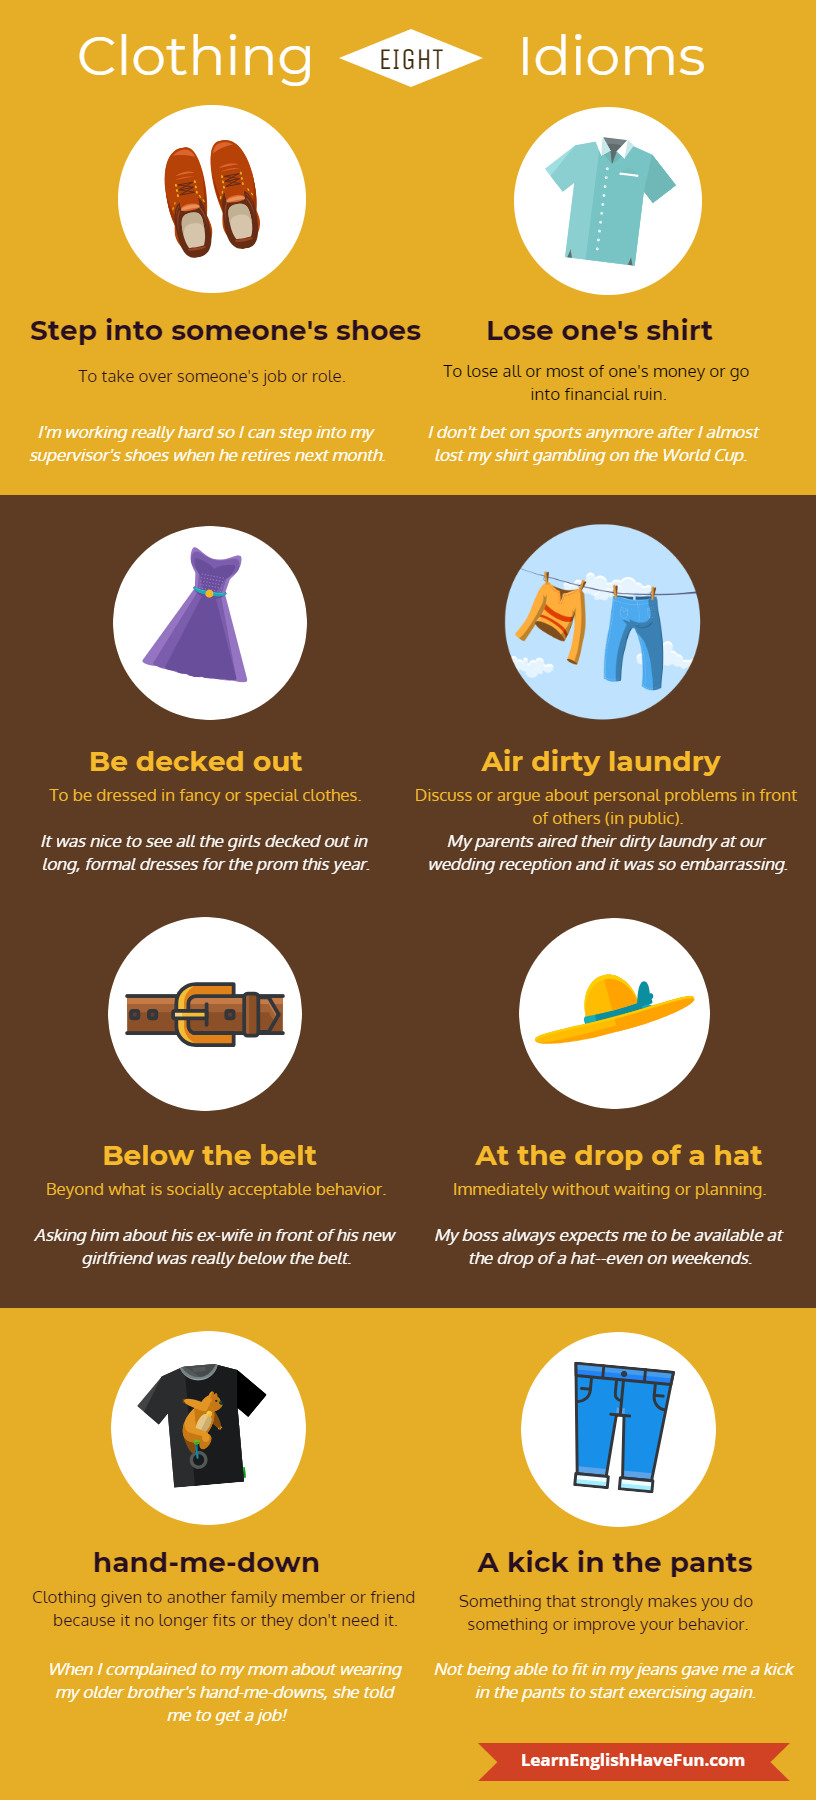 A visual presentation of Eight English idioms related to clothing that are also in the text of this web page.